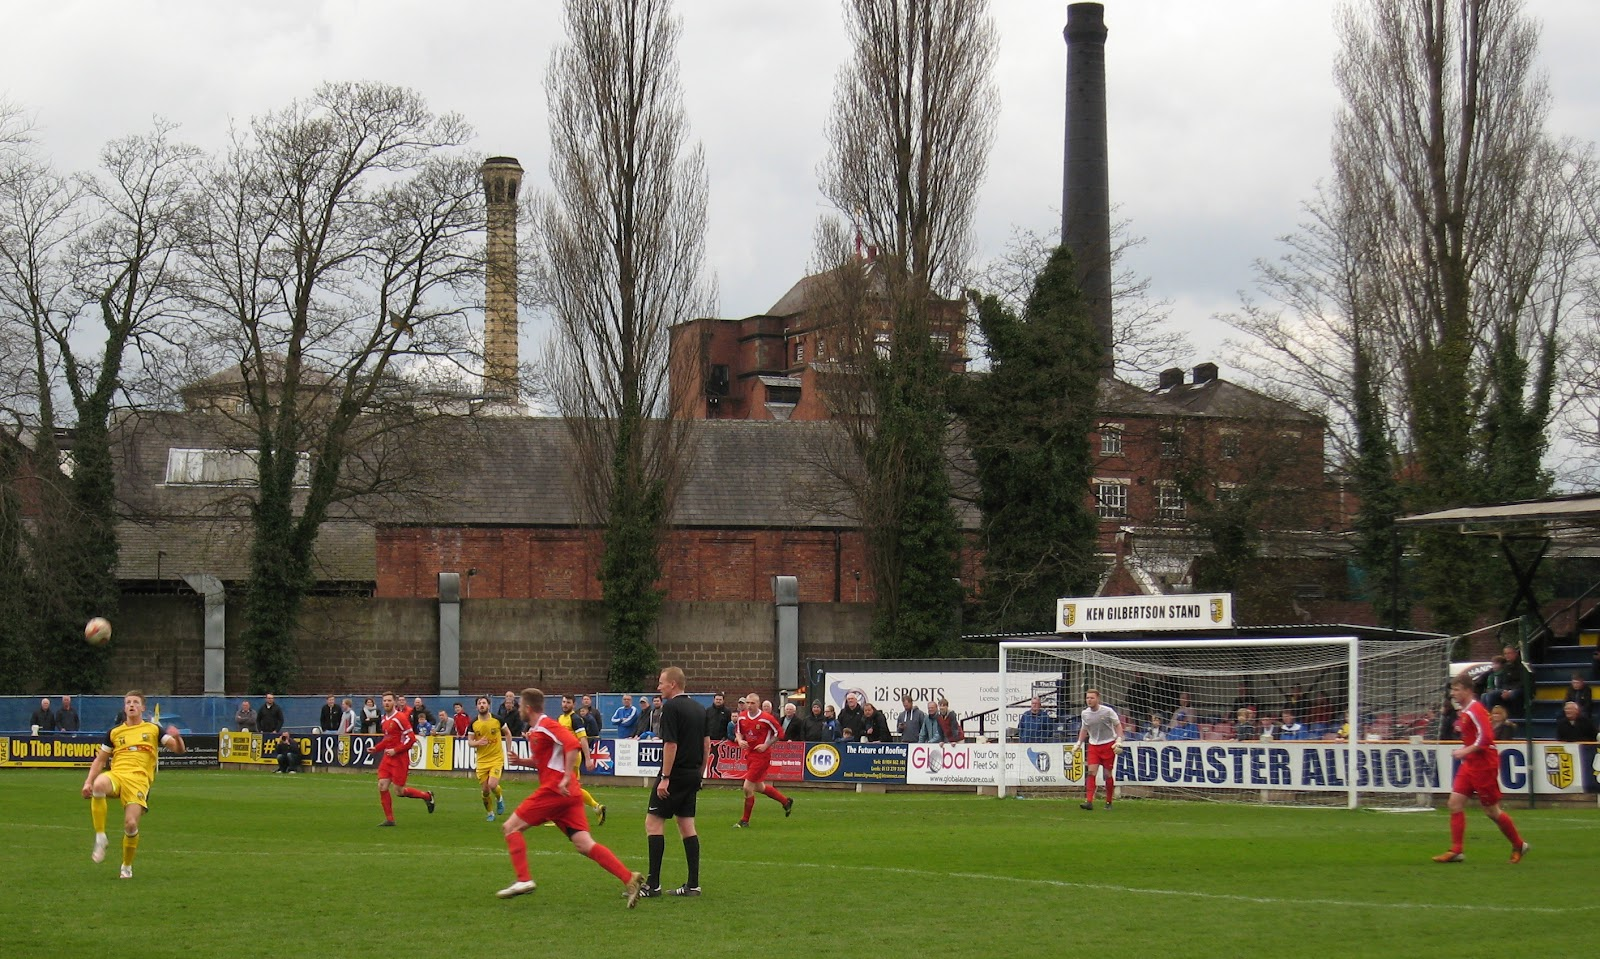 Up for the cup tadcaster albion reached the quarter final of the fa vase the furthest theyve ever been in the competition but it all ended in tears and reviewsmspy